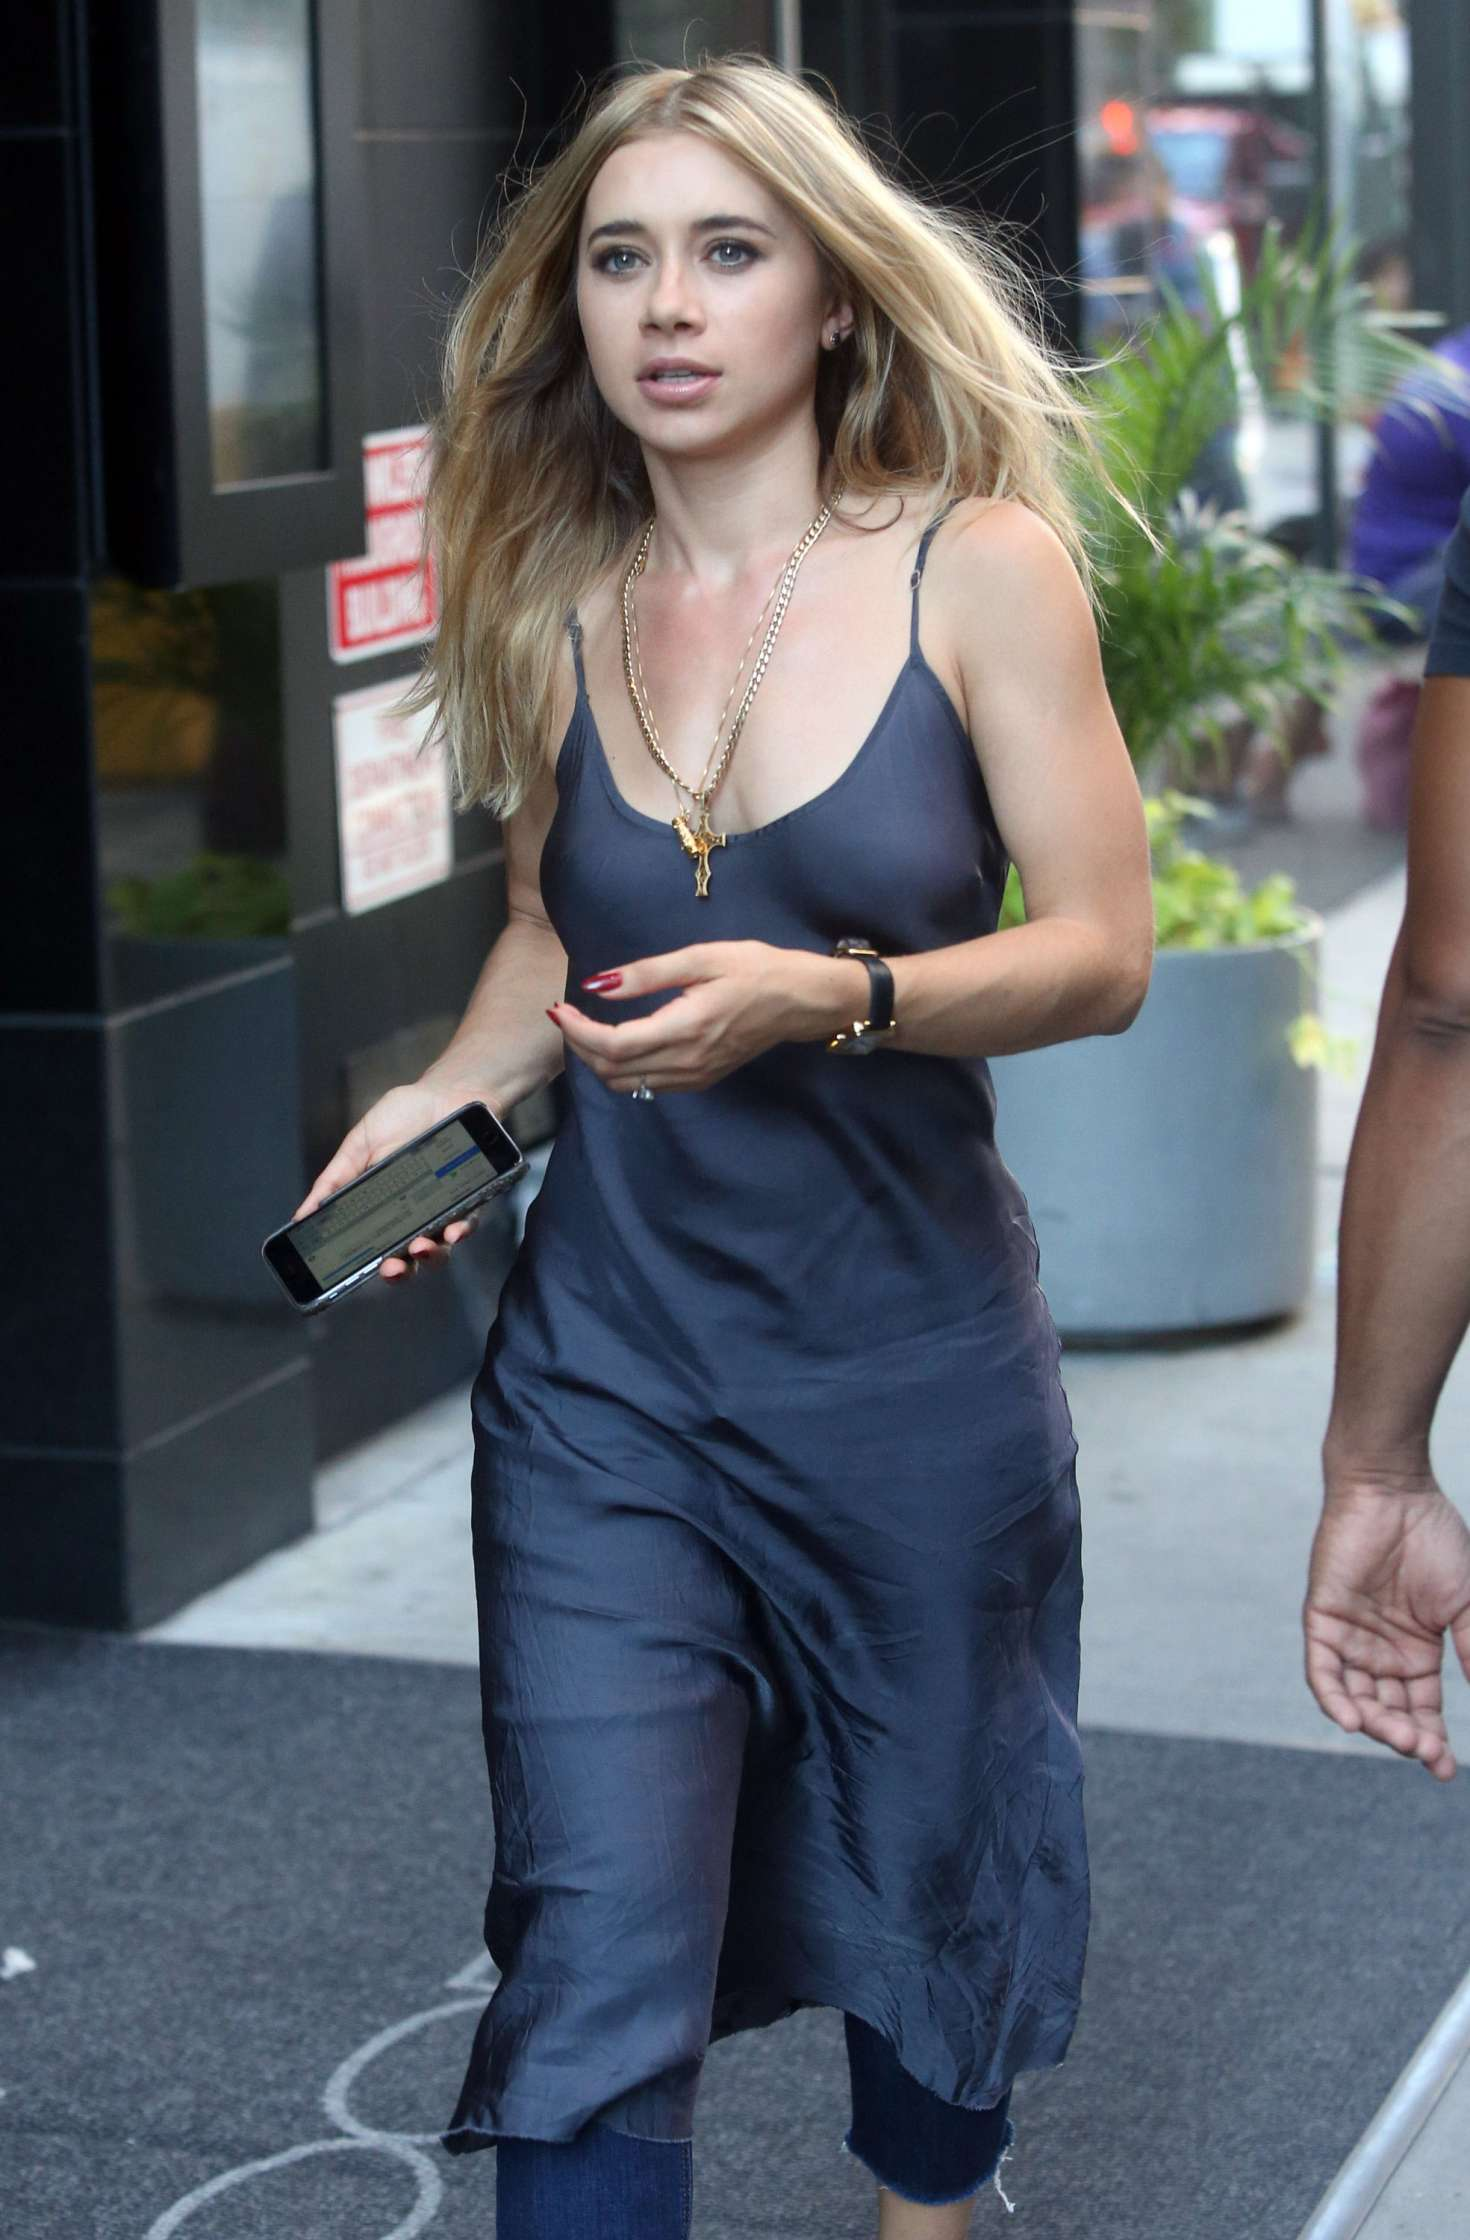 Pictures Olesya Rulin nudes (97 foto and video), Sexy, Paparazzi, Instagram, braless 2006